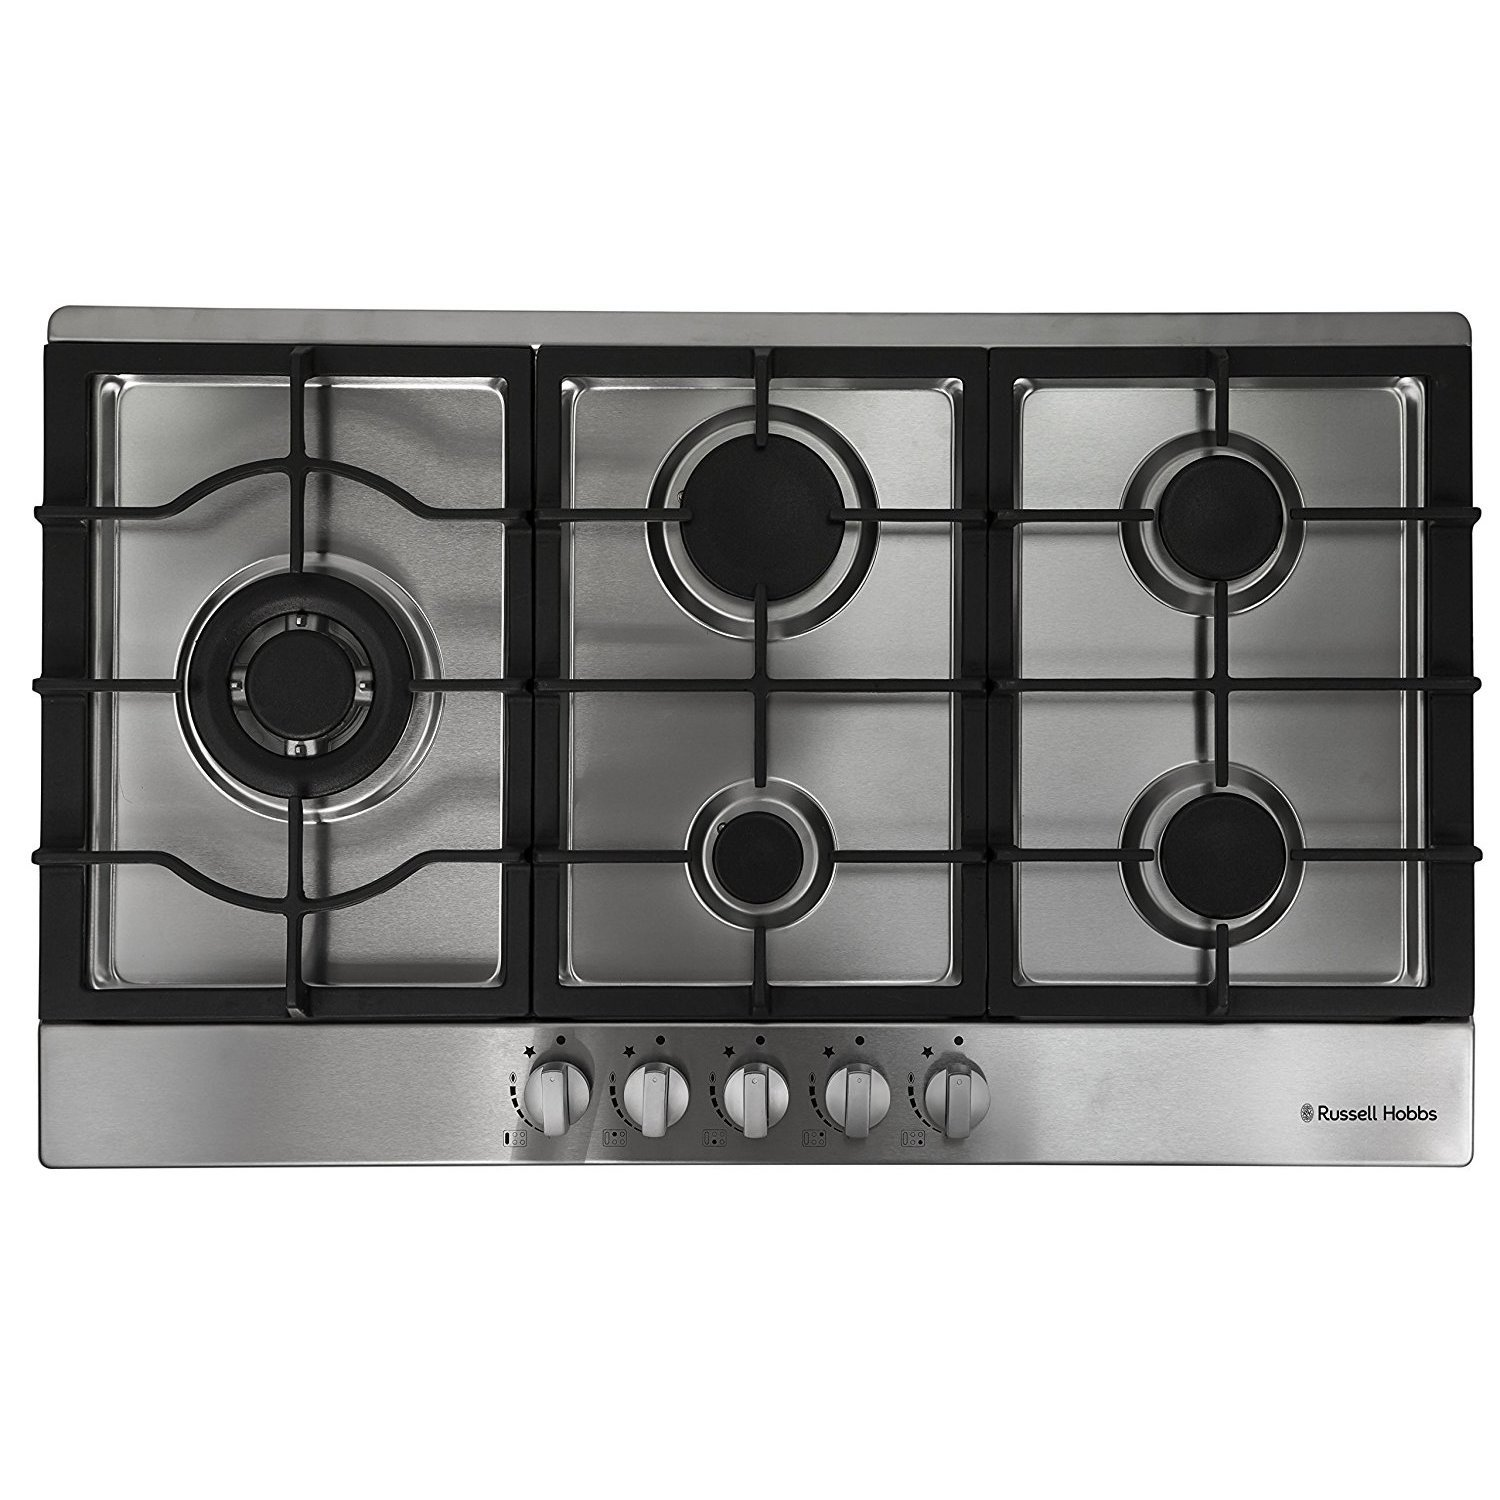 Russell Hobbs RH75GH601SS Stainless Steel 75cm Wide, 5 Burner Gas Hob, Free 2 Year Guarantee